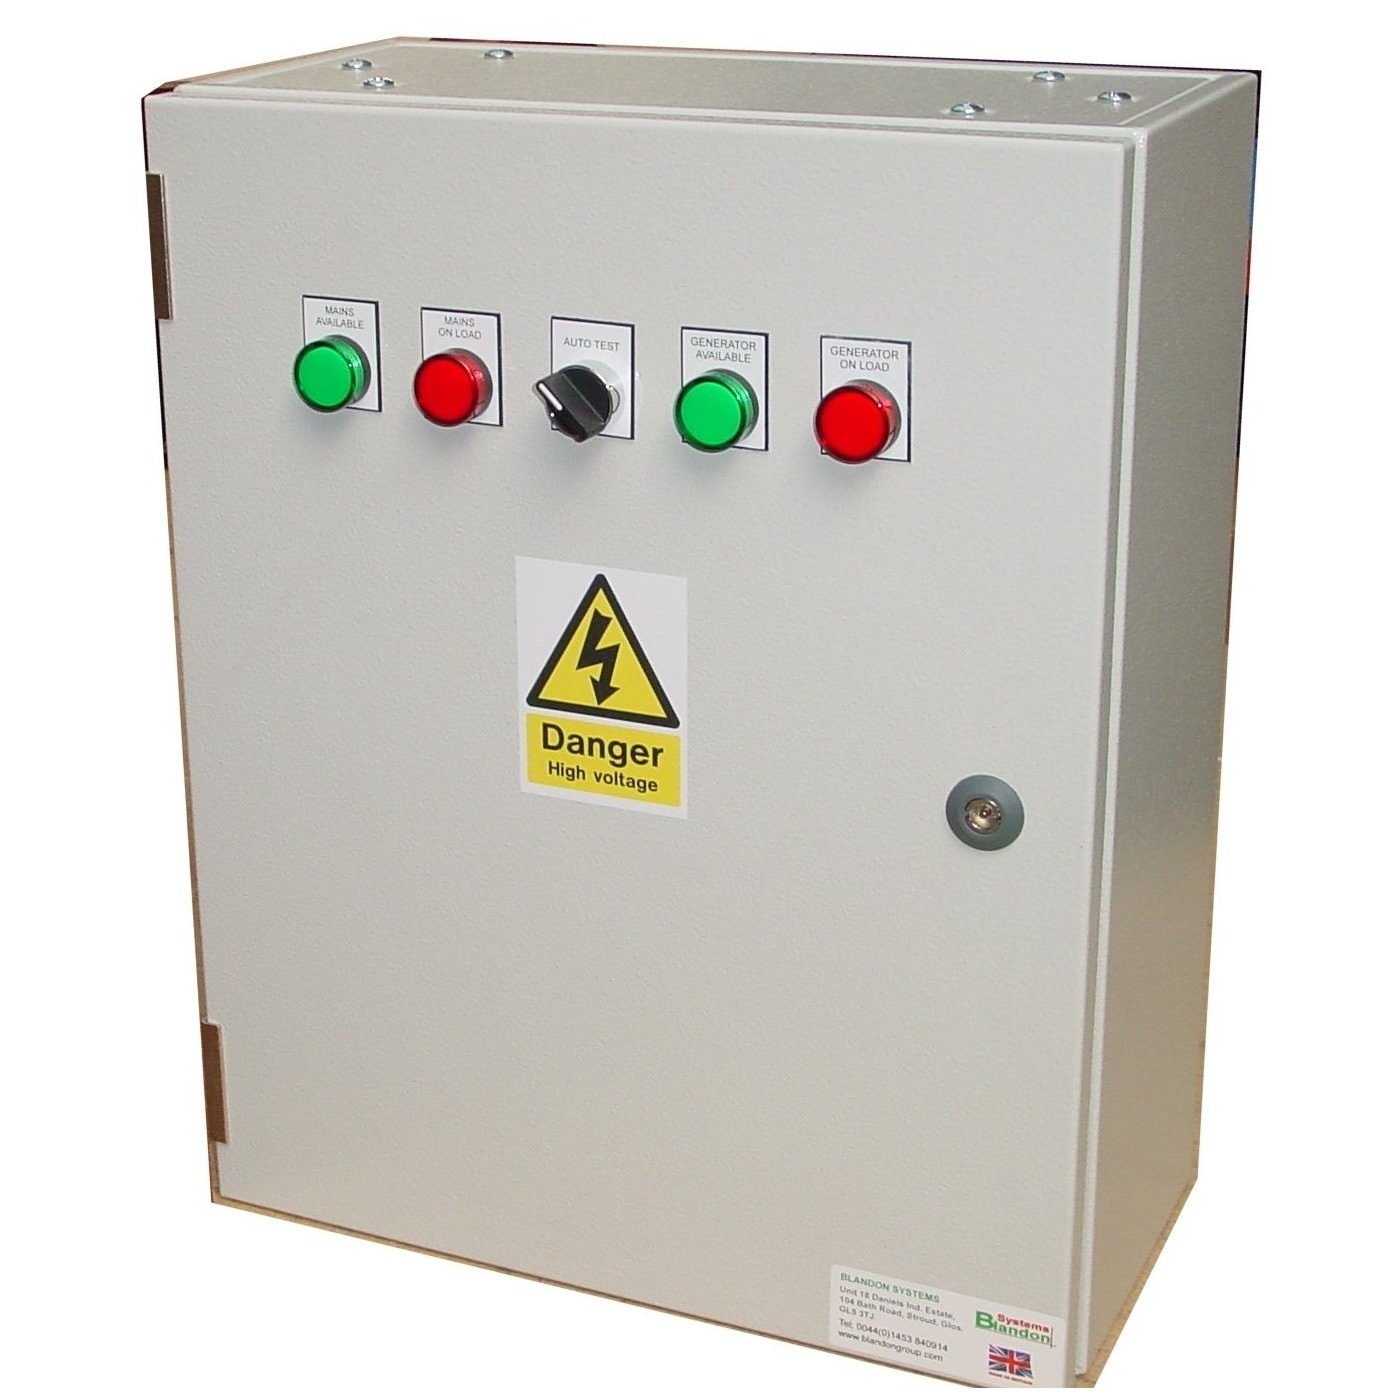 100A ATS Single Phase 230V, UVR Controlled, ABB Contactors